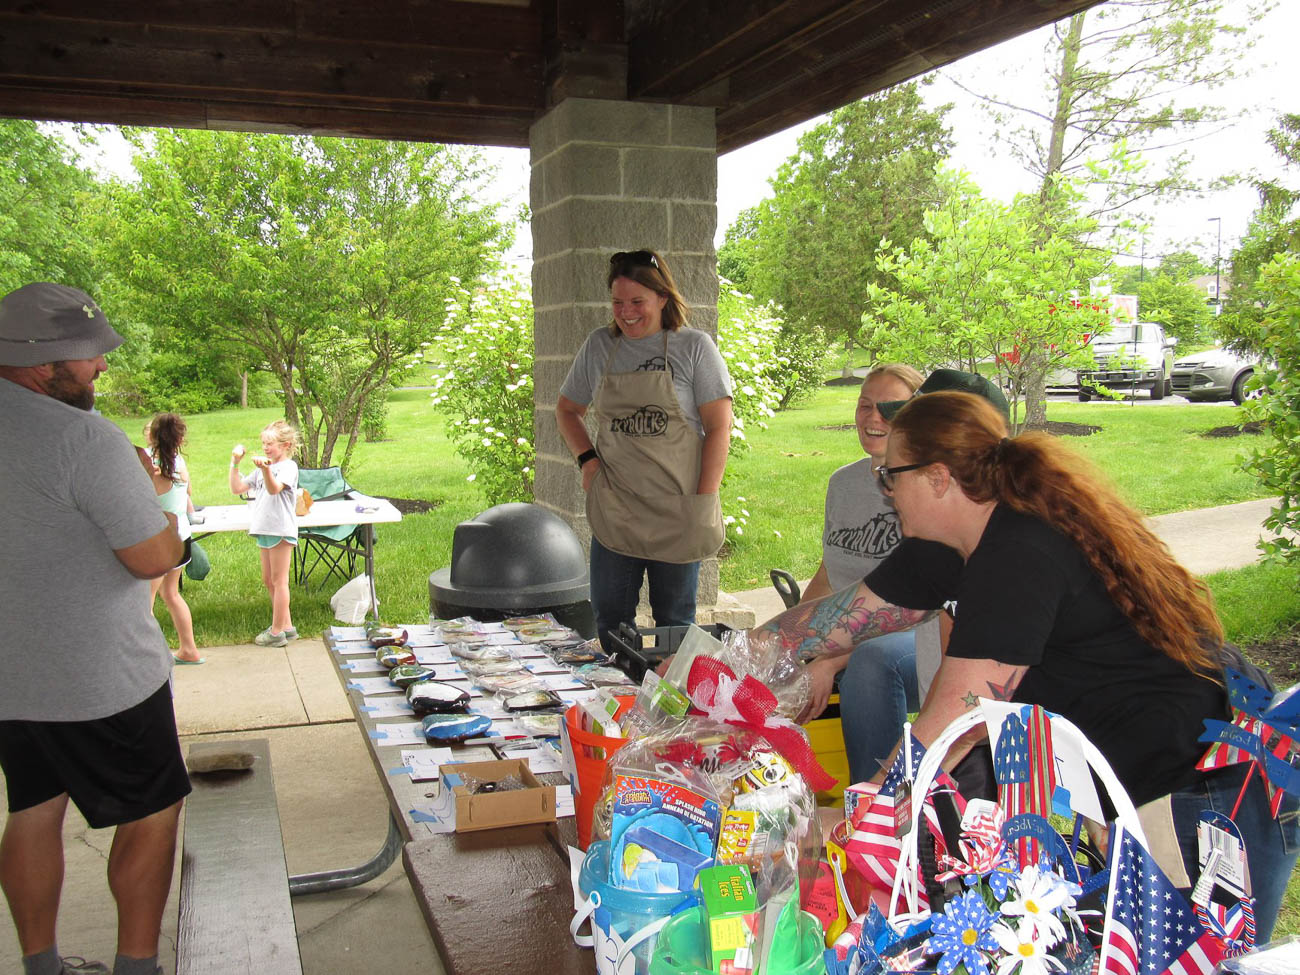 When the group hosts rock-hunting events, they partner with non-profits in the community to raise money for different causes by auctioning off items. A few organizations they've worked with are the Children's Home of Northern Kentucky, Stray Animal Adoption Program (SAAP), and Vivian's Victory—a group that helps families who have a child with an illness or disability financially and emotionally. / Image: Nancy Fedders     // Published: 8.17.19